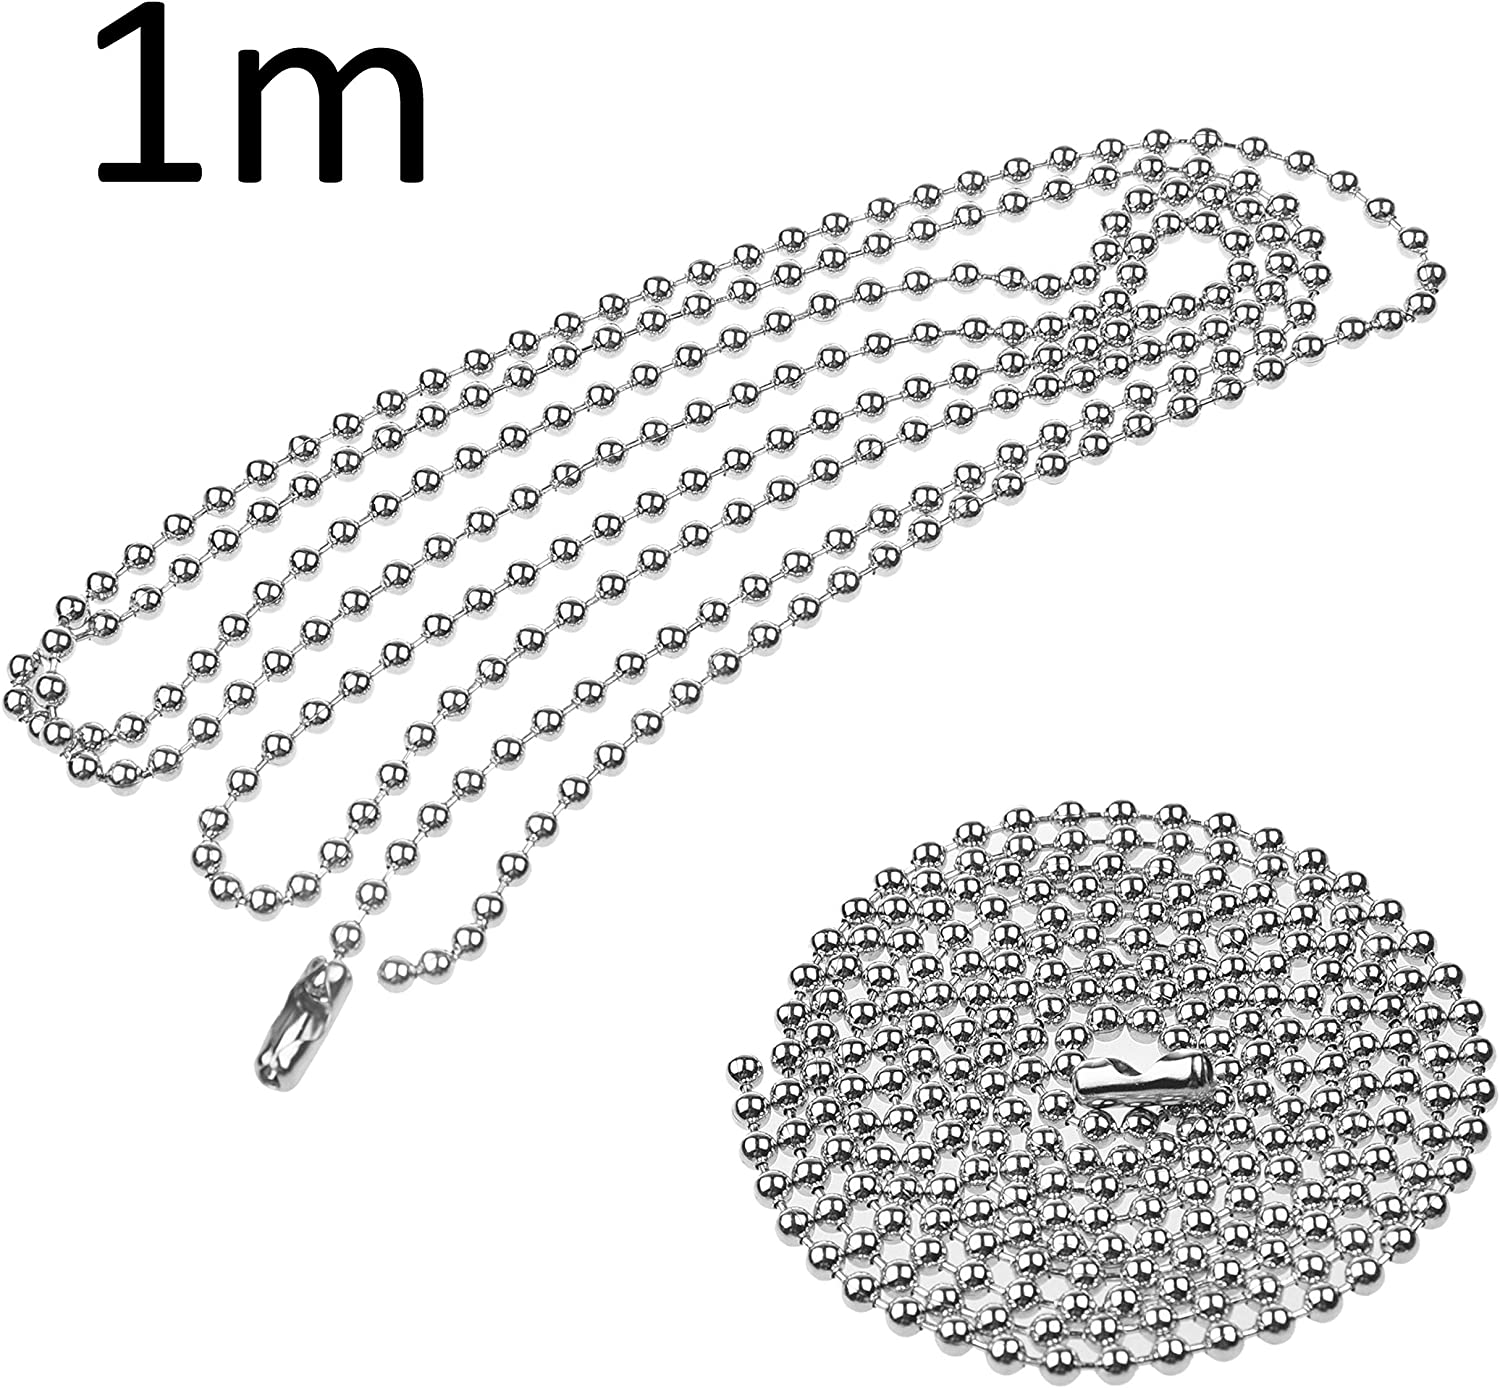 13.6 inches 2x 1M Extension Pull Chains and 4x Extra Connectors Kare and Kind Light and Fan Pull Chain Gift Set 12.5 inches 1x Light Pull Chain 2 styles - Copper Plated 1x Fan Pull Chain